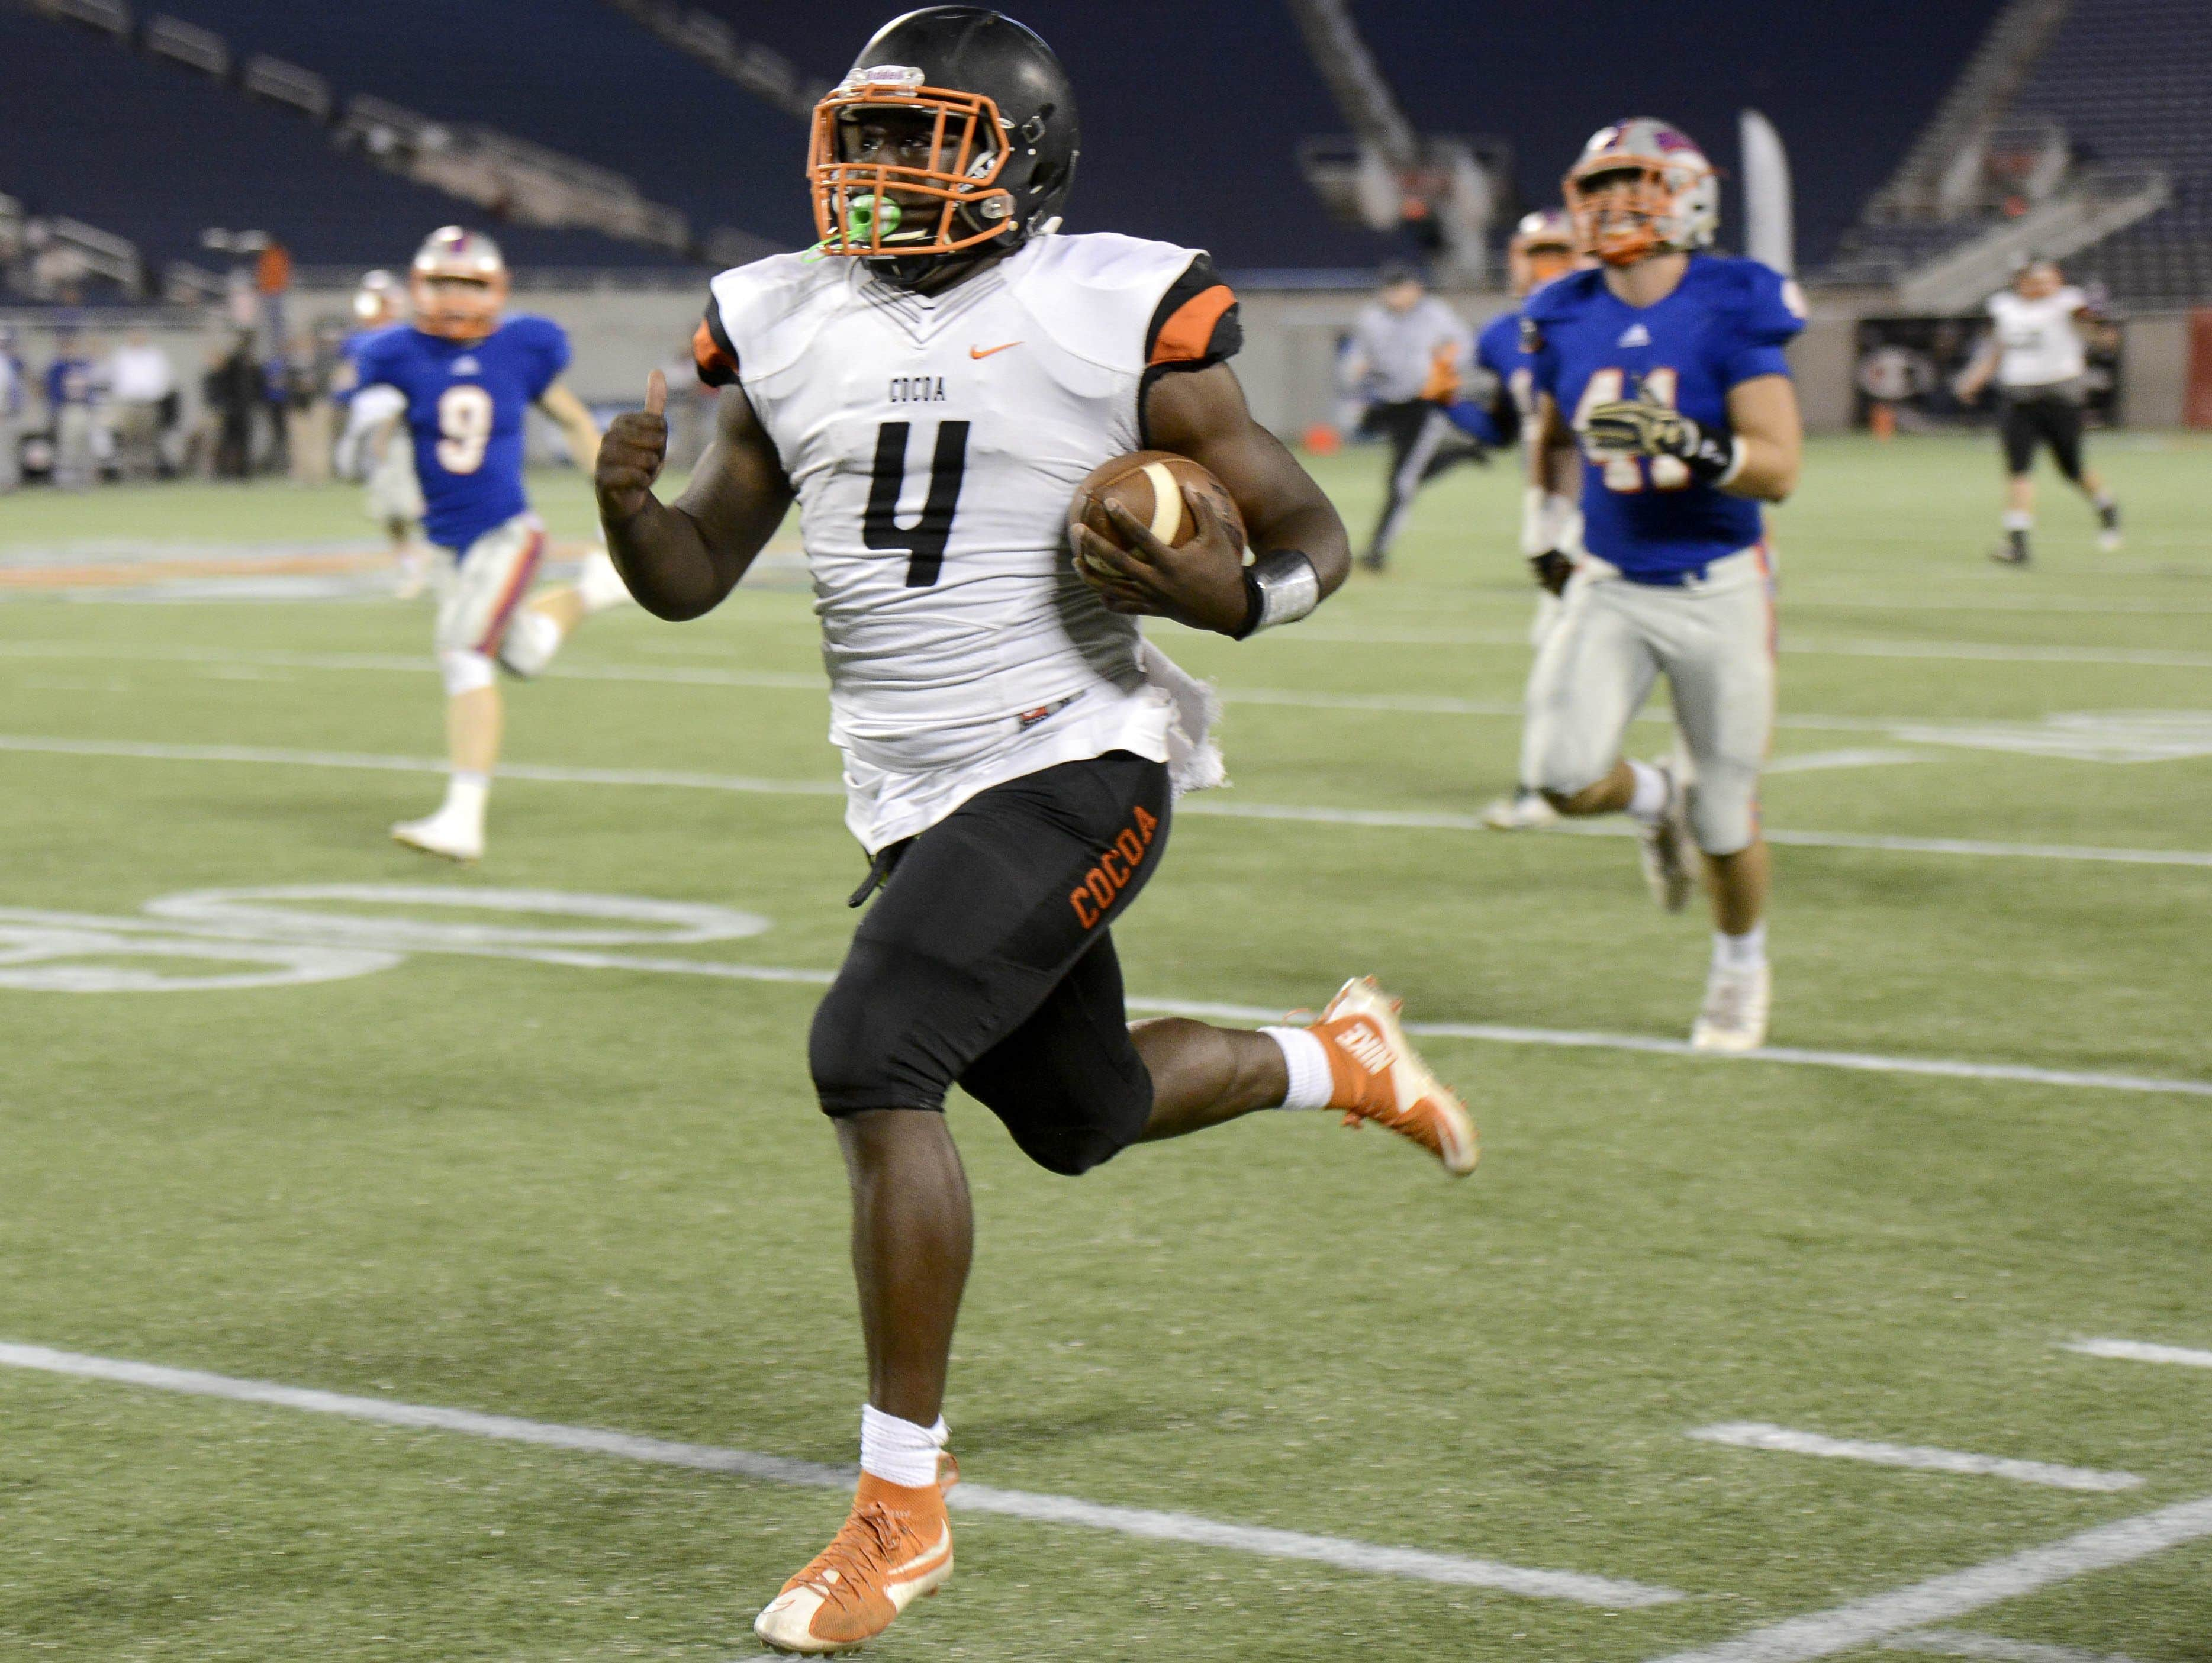 Bruce Judson of Cocoa goes 75 yards for a TD during the 2016 Class 4A championship game in Orlando.